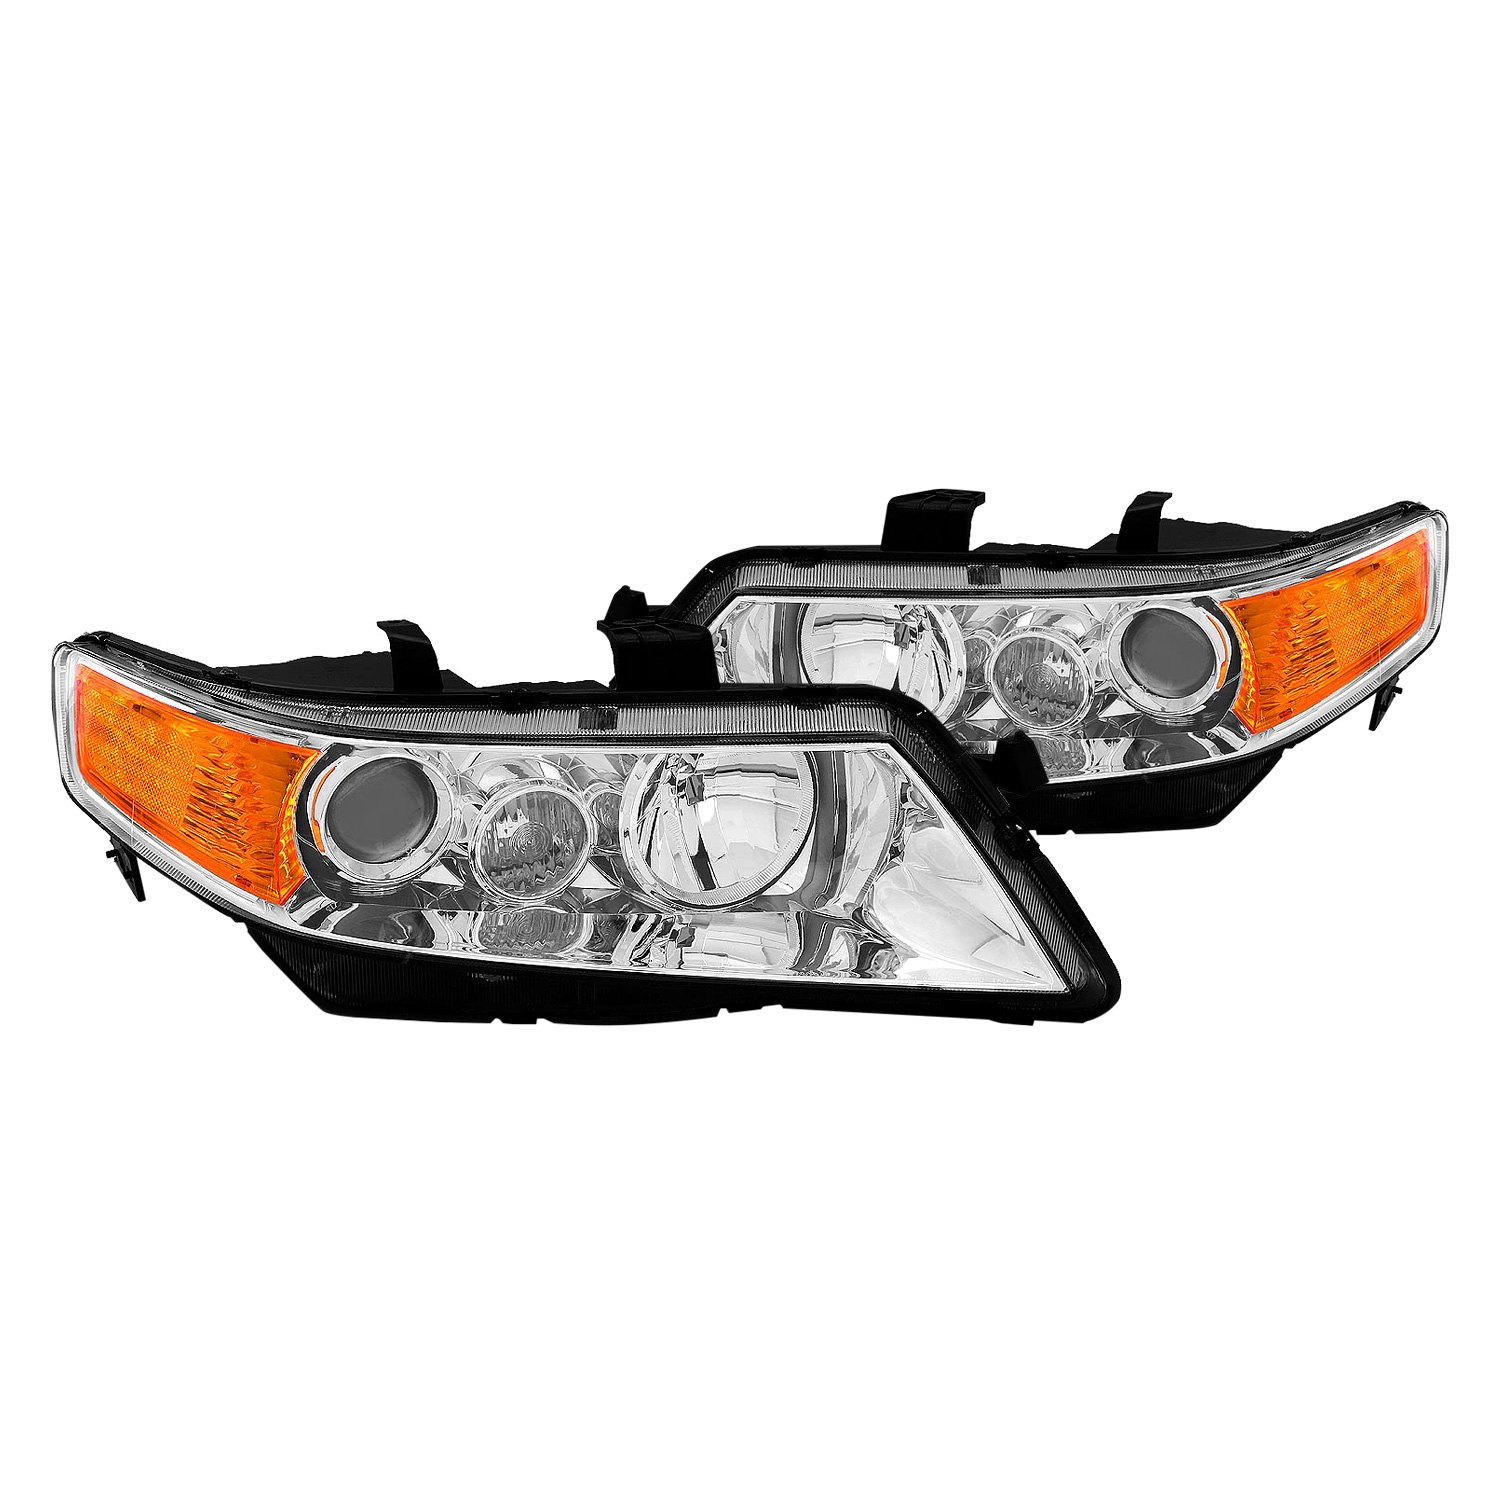 Acura TSX 2004 Chrome Factory Style Projector